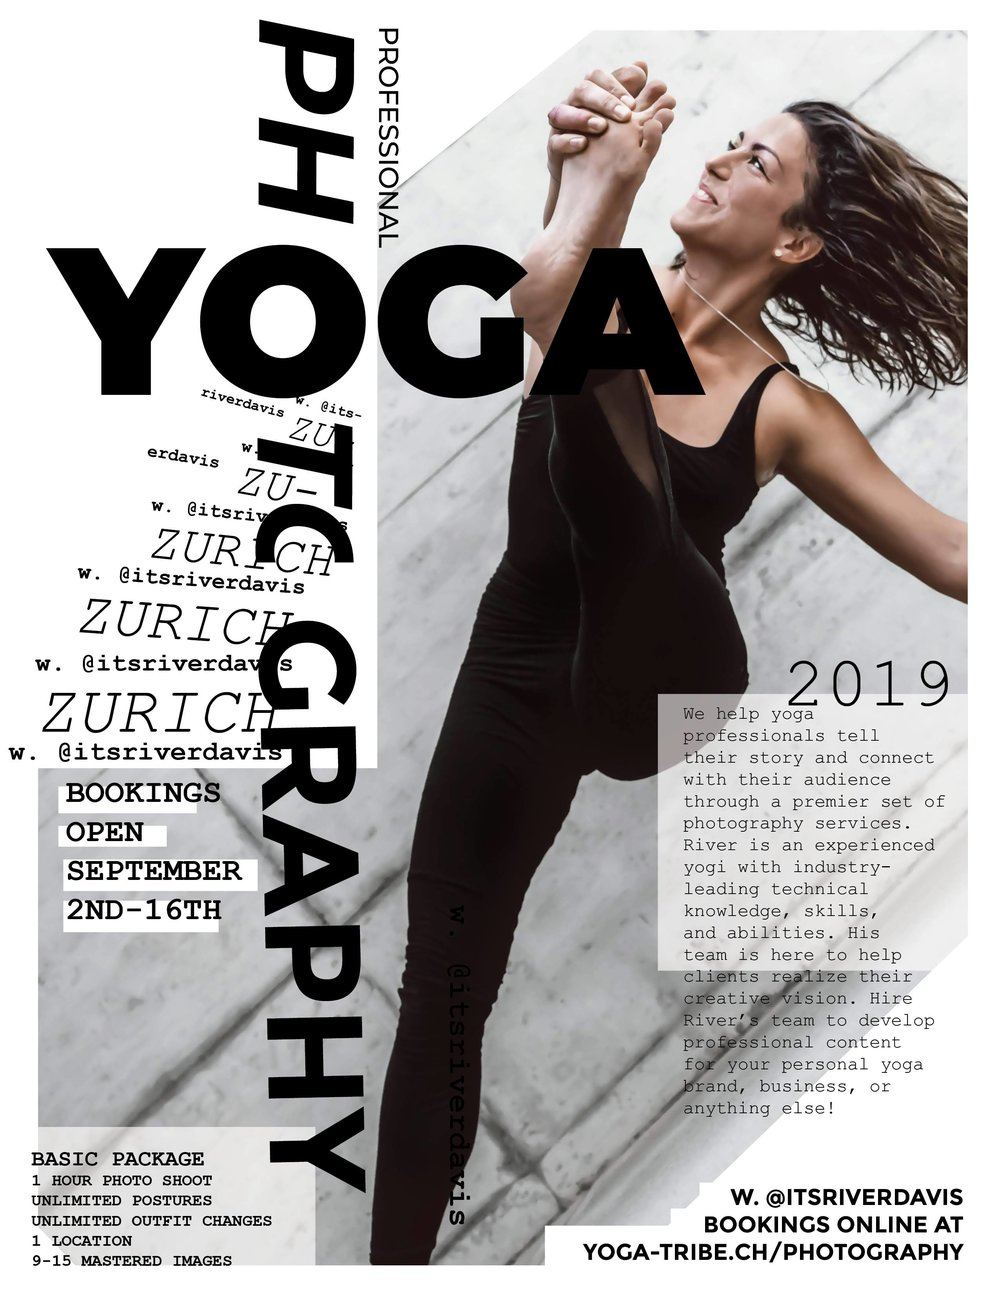 Yoga Photography Flyer Yoga Tribe Zurich.jpg